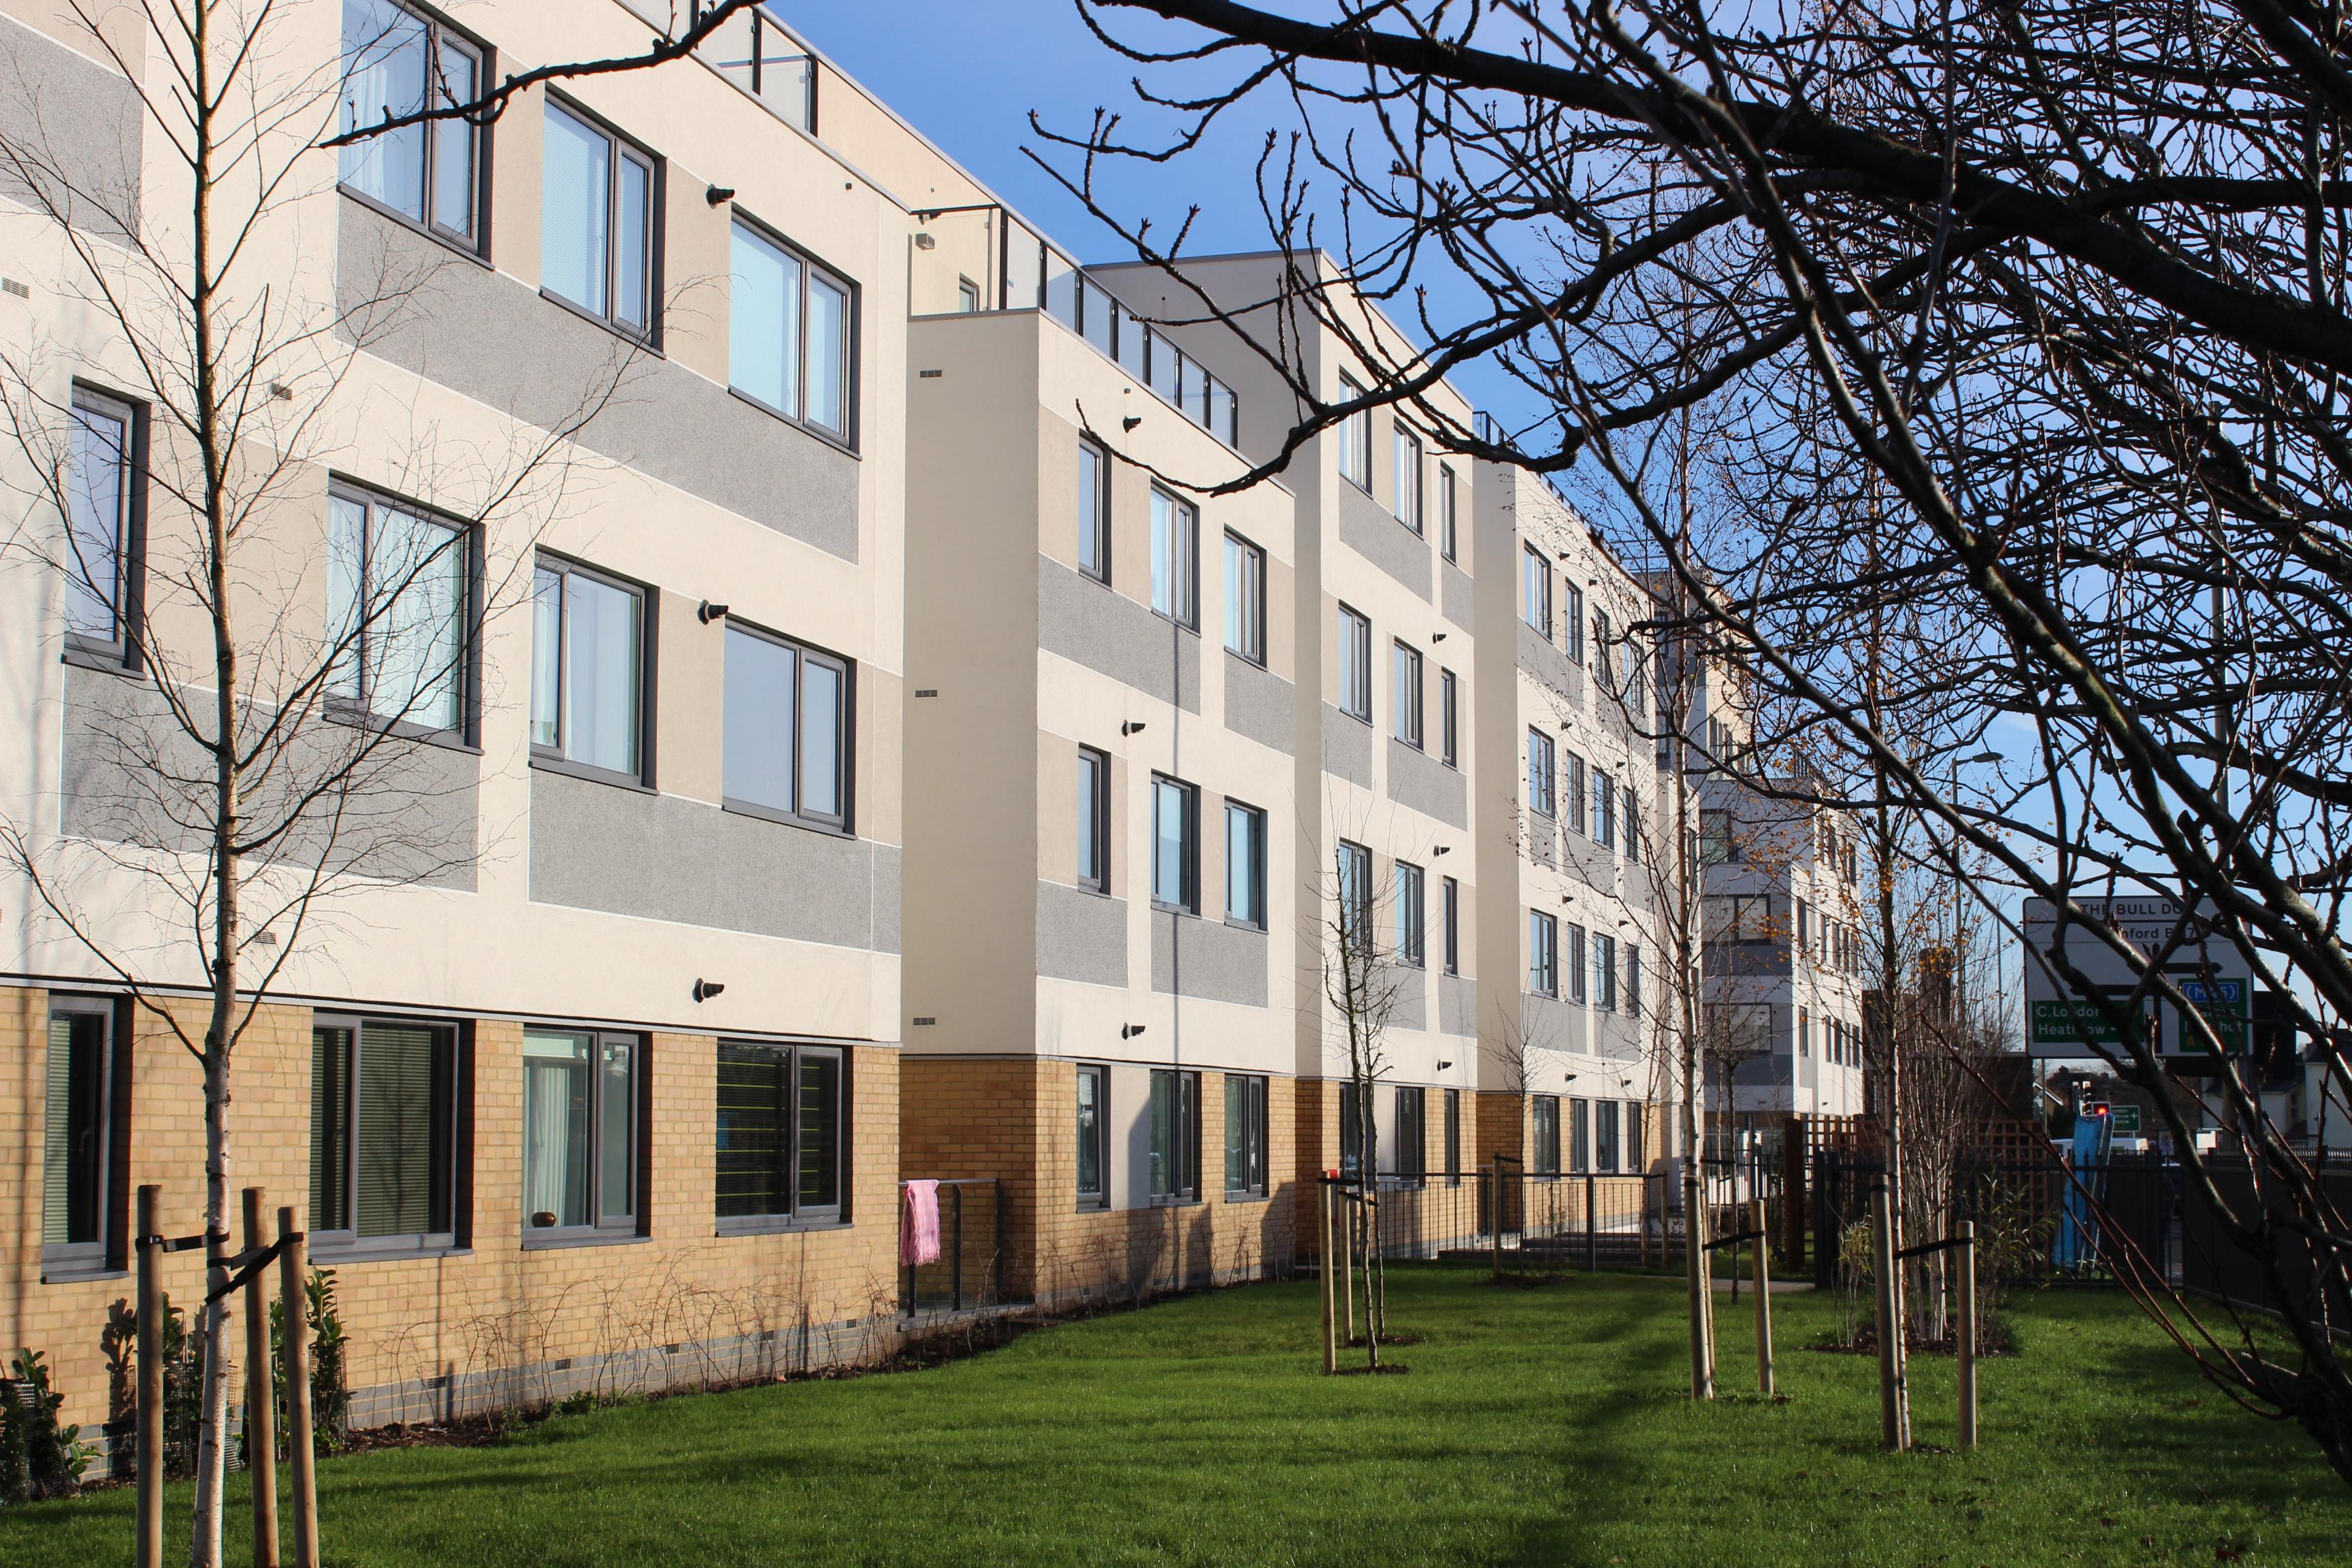 EWI New Build Project, West Plaza